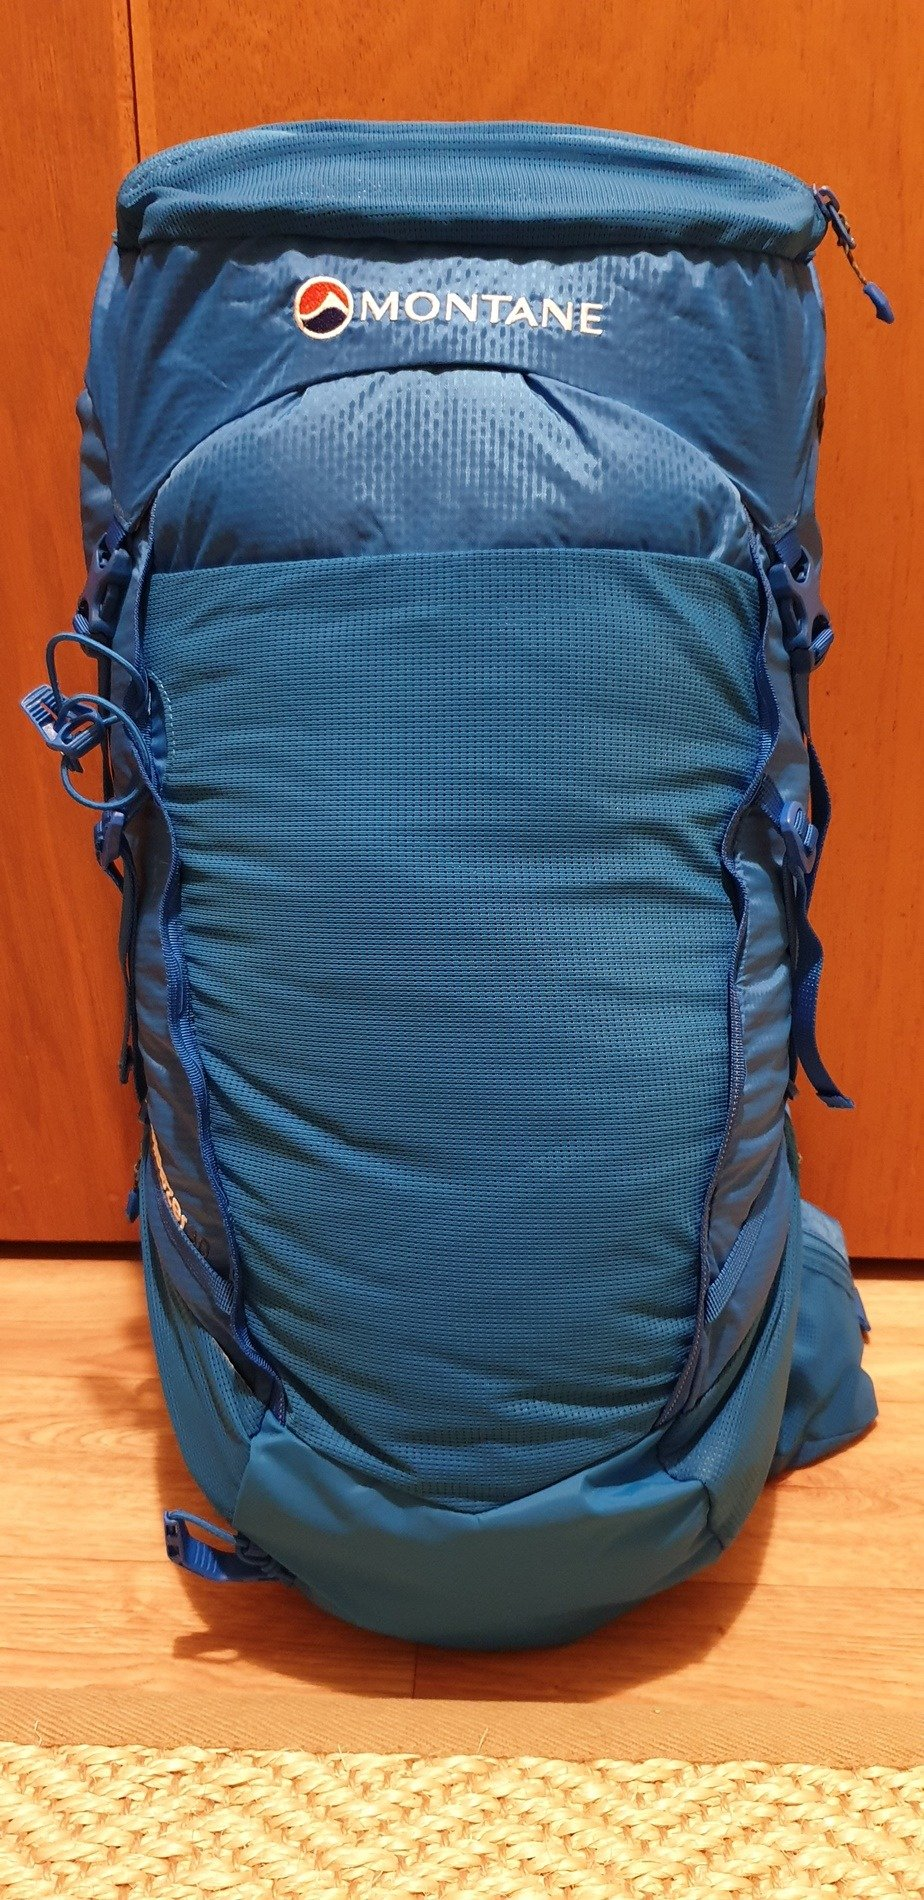 502834c96b1 Montane Trailblazer 30 Rucksack Review